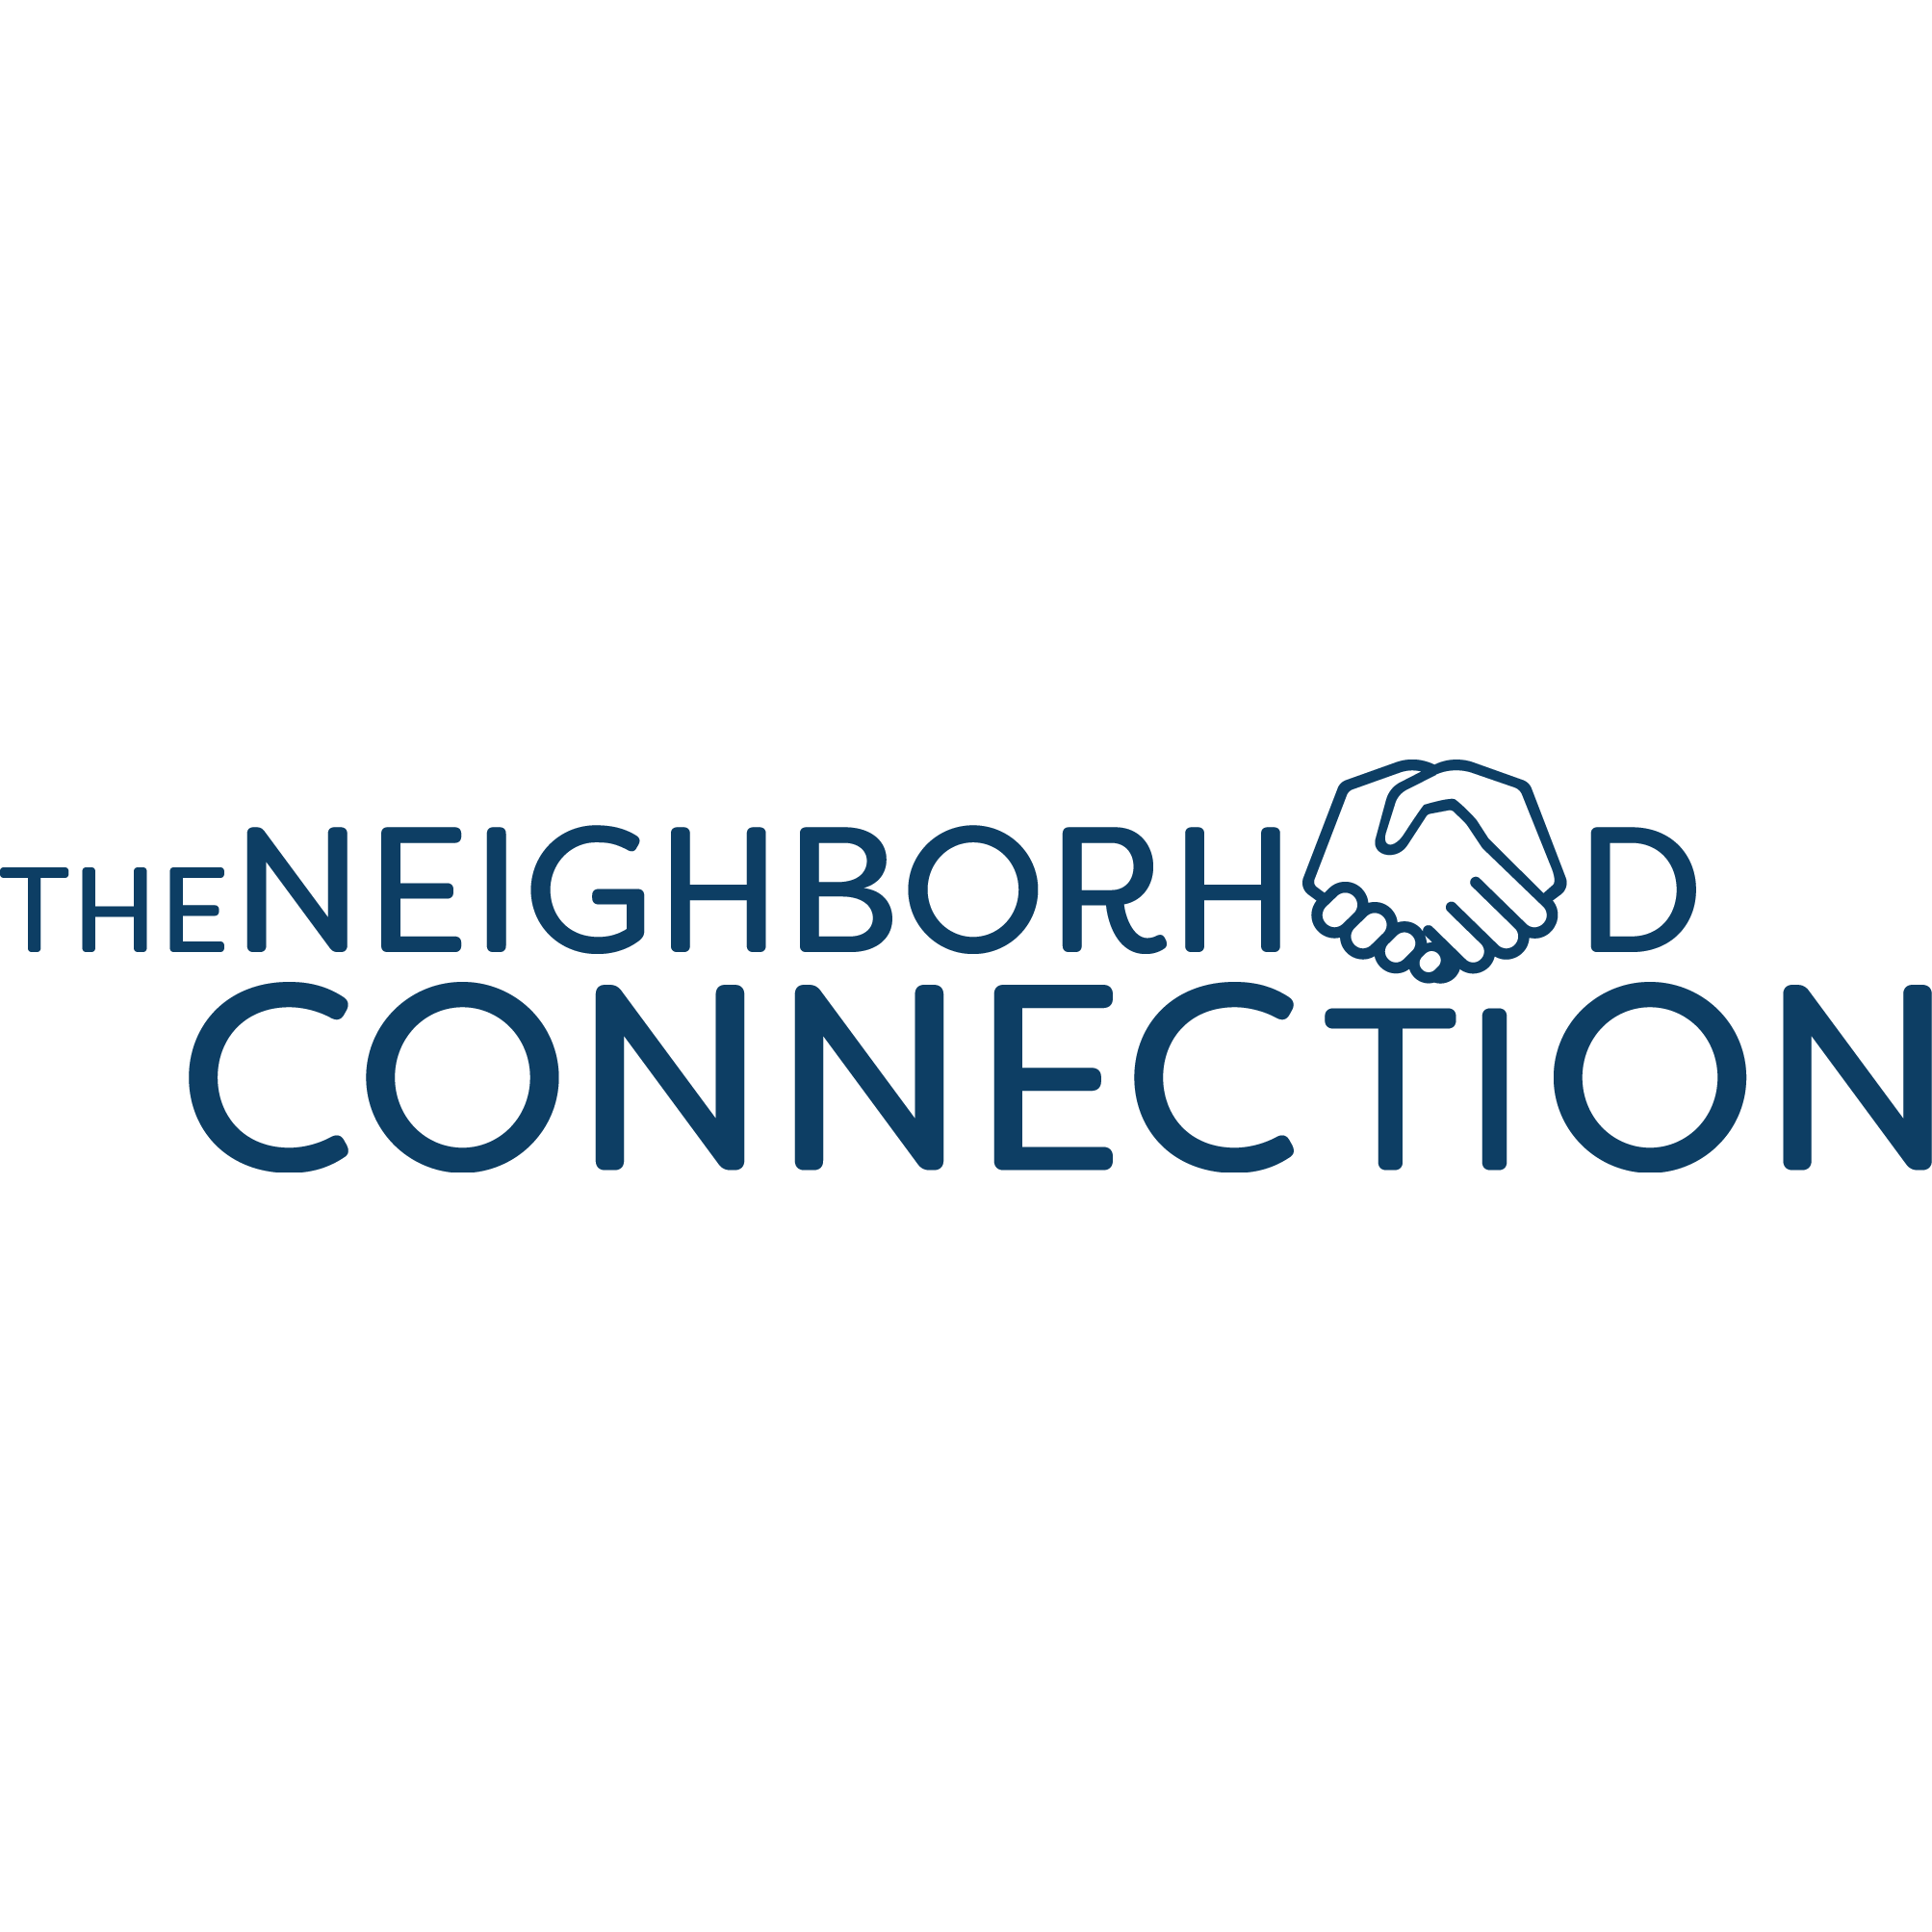 The Neighborhood Connection